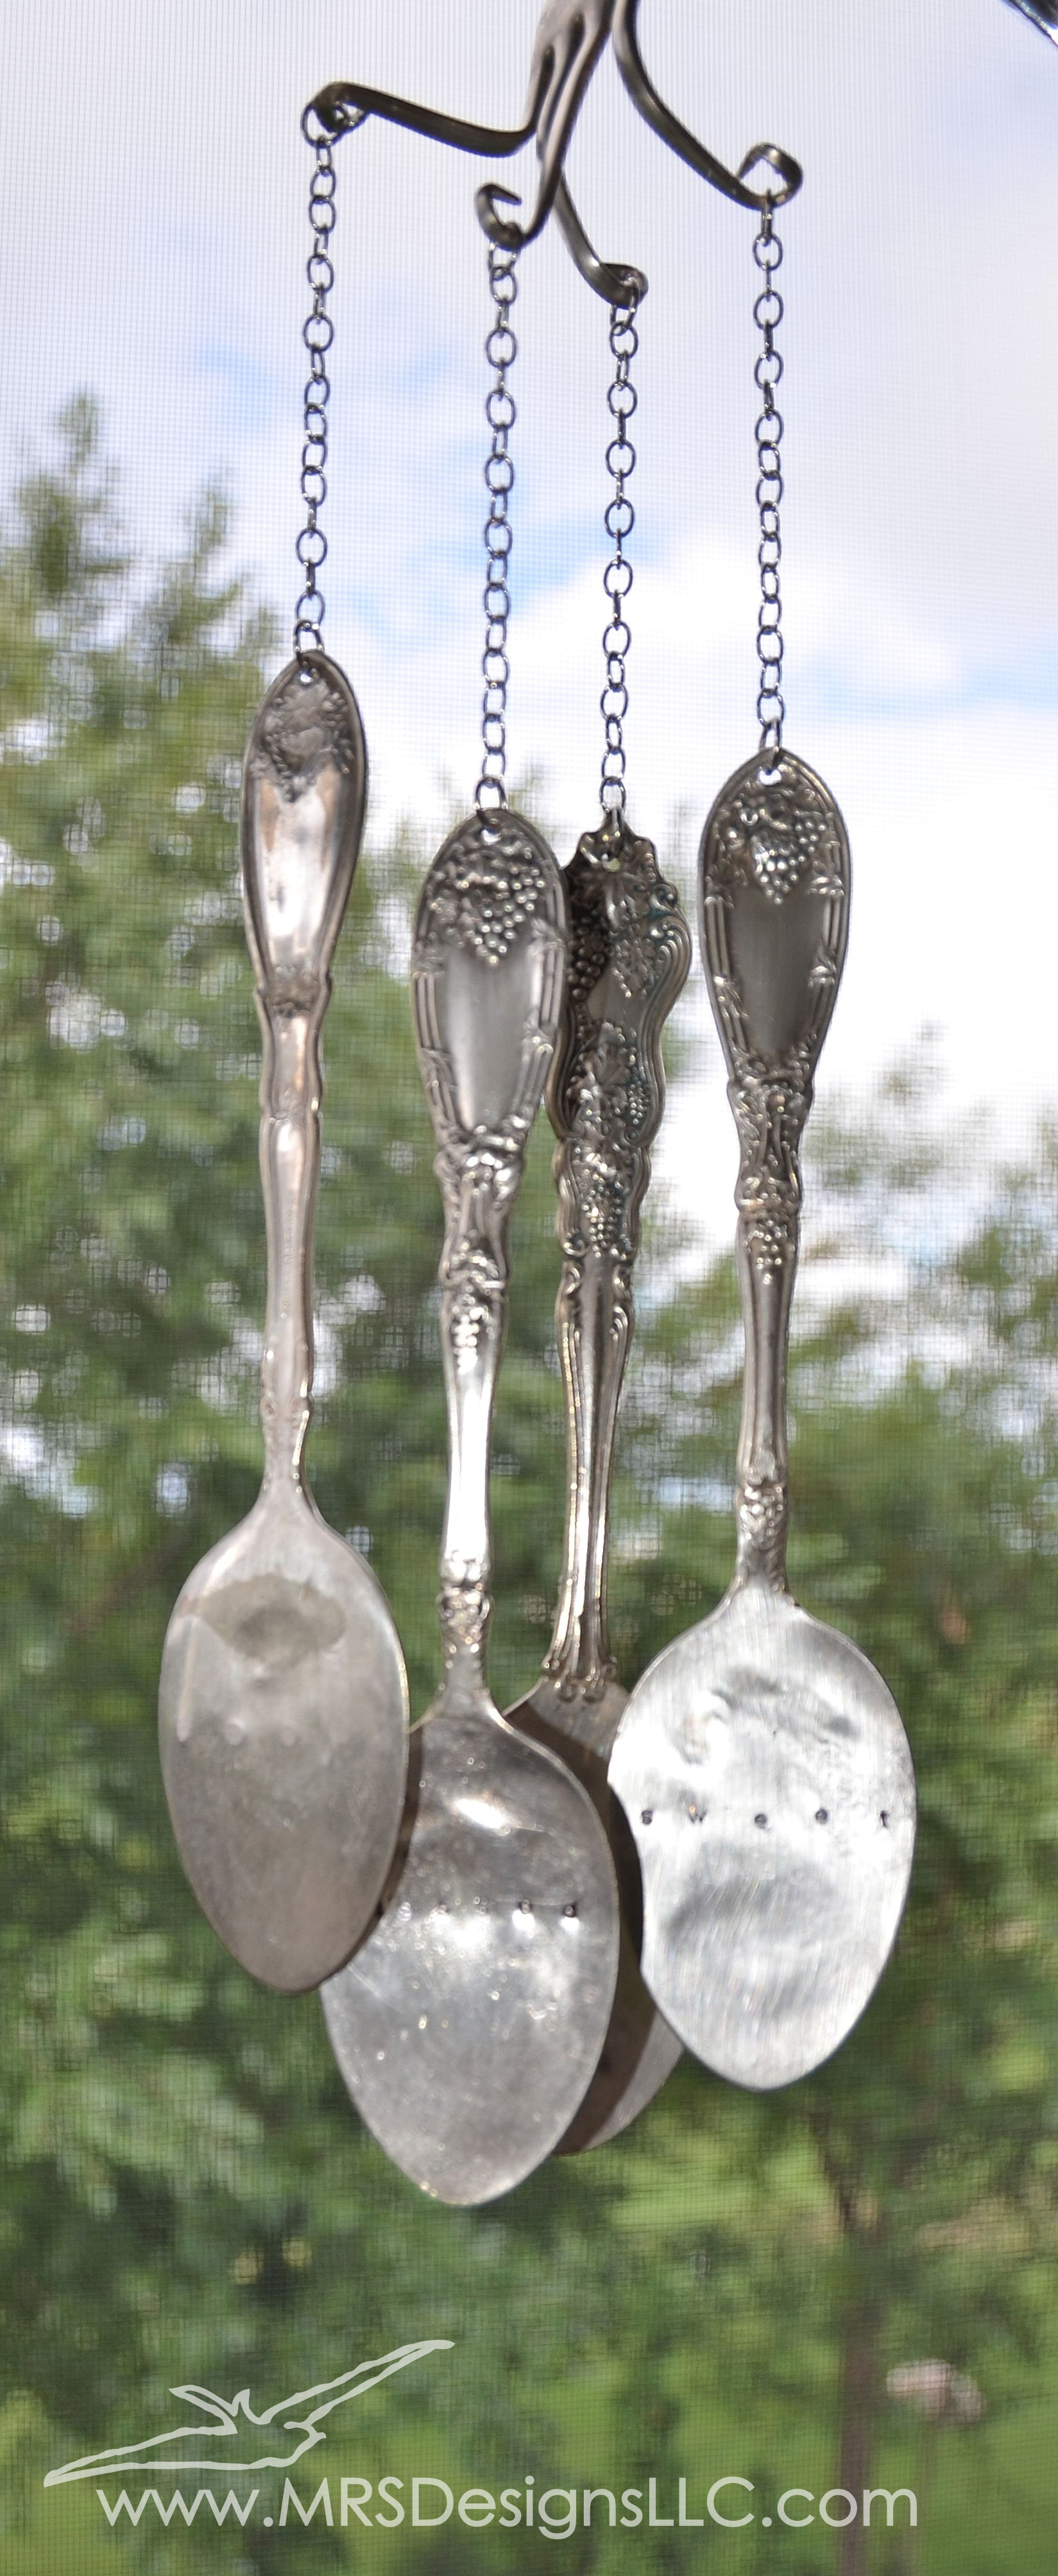 MRS Designs Blog - DIY wind chime using vintage spoons.jpg